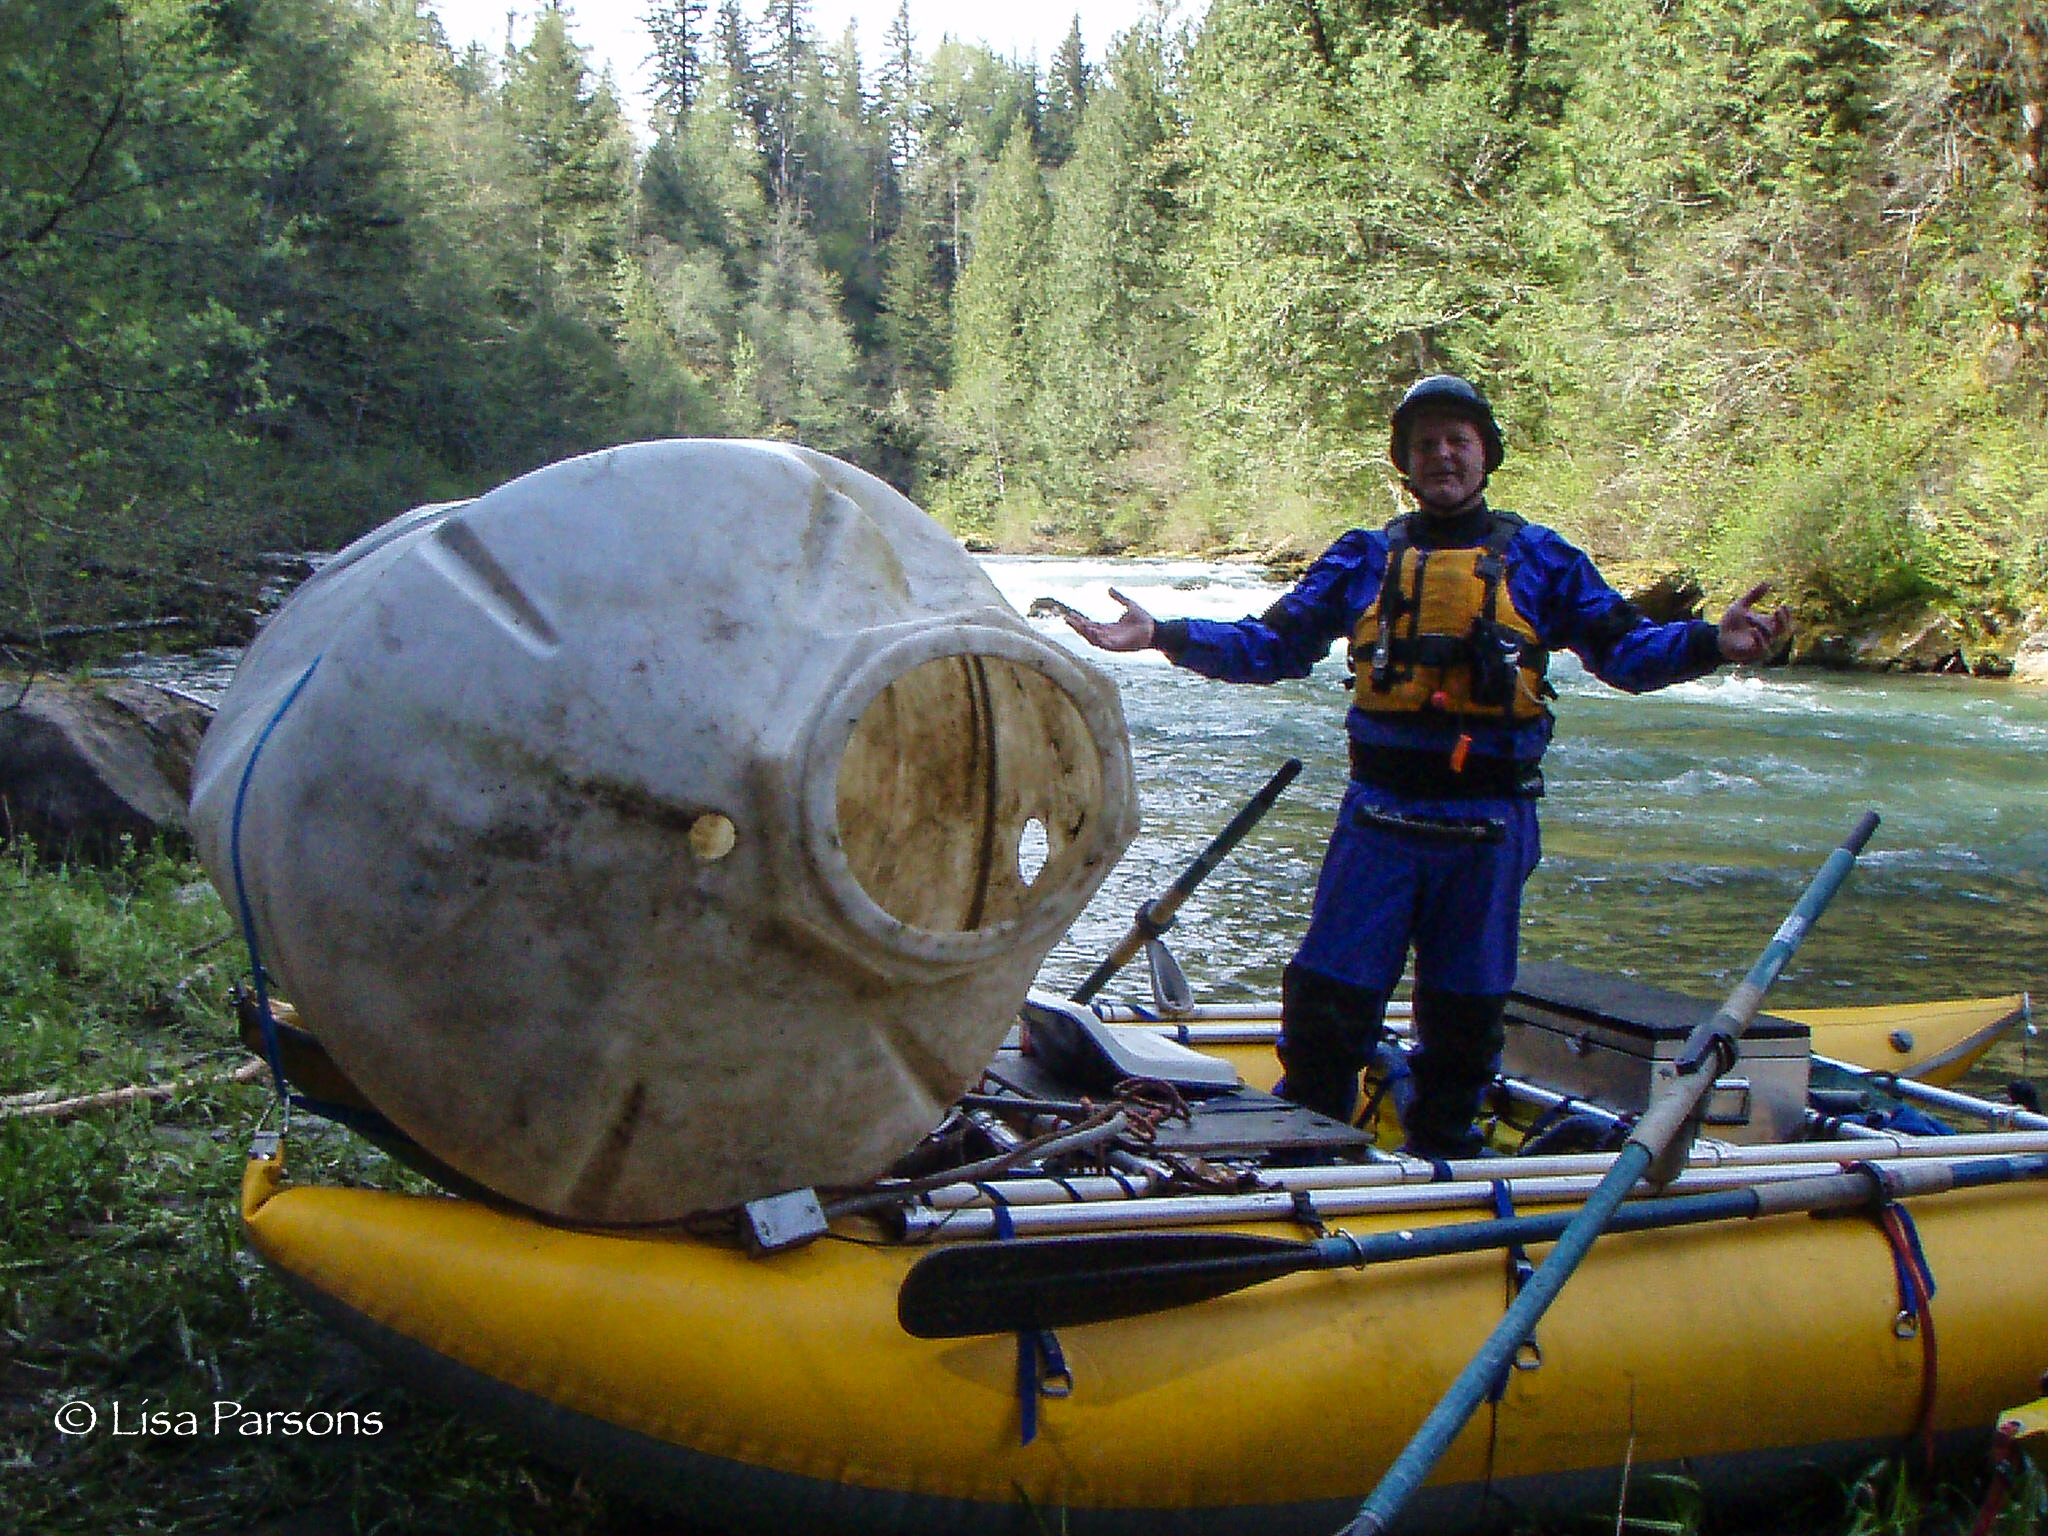 River Cleanup. A giant plastic water container? Photo by Chris Hewitt